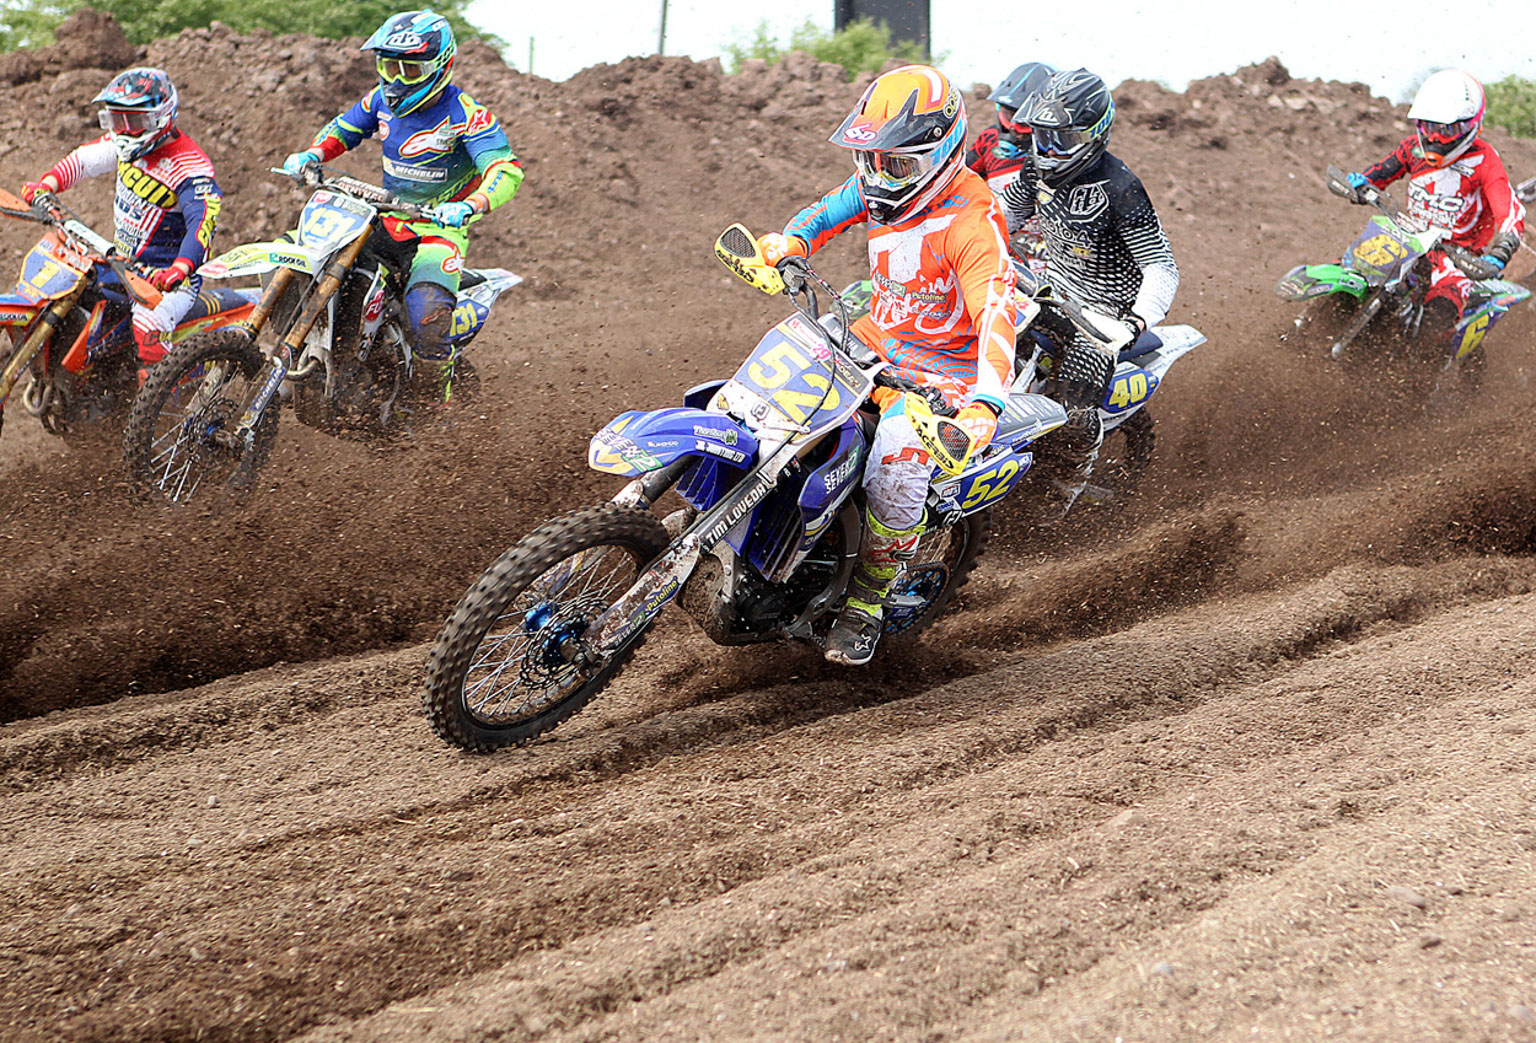 MX2 moto one with Luke Dean(52) in charge